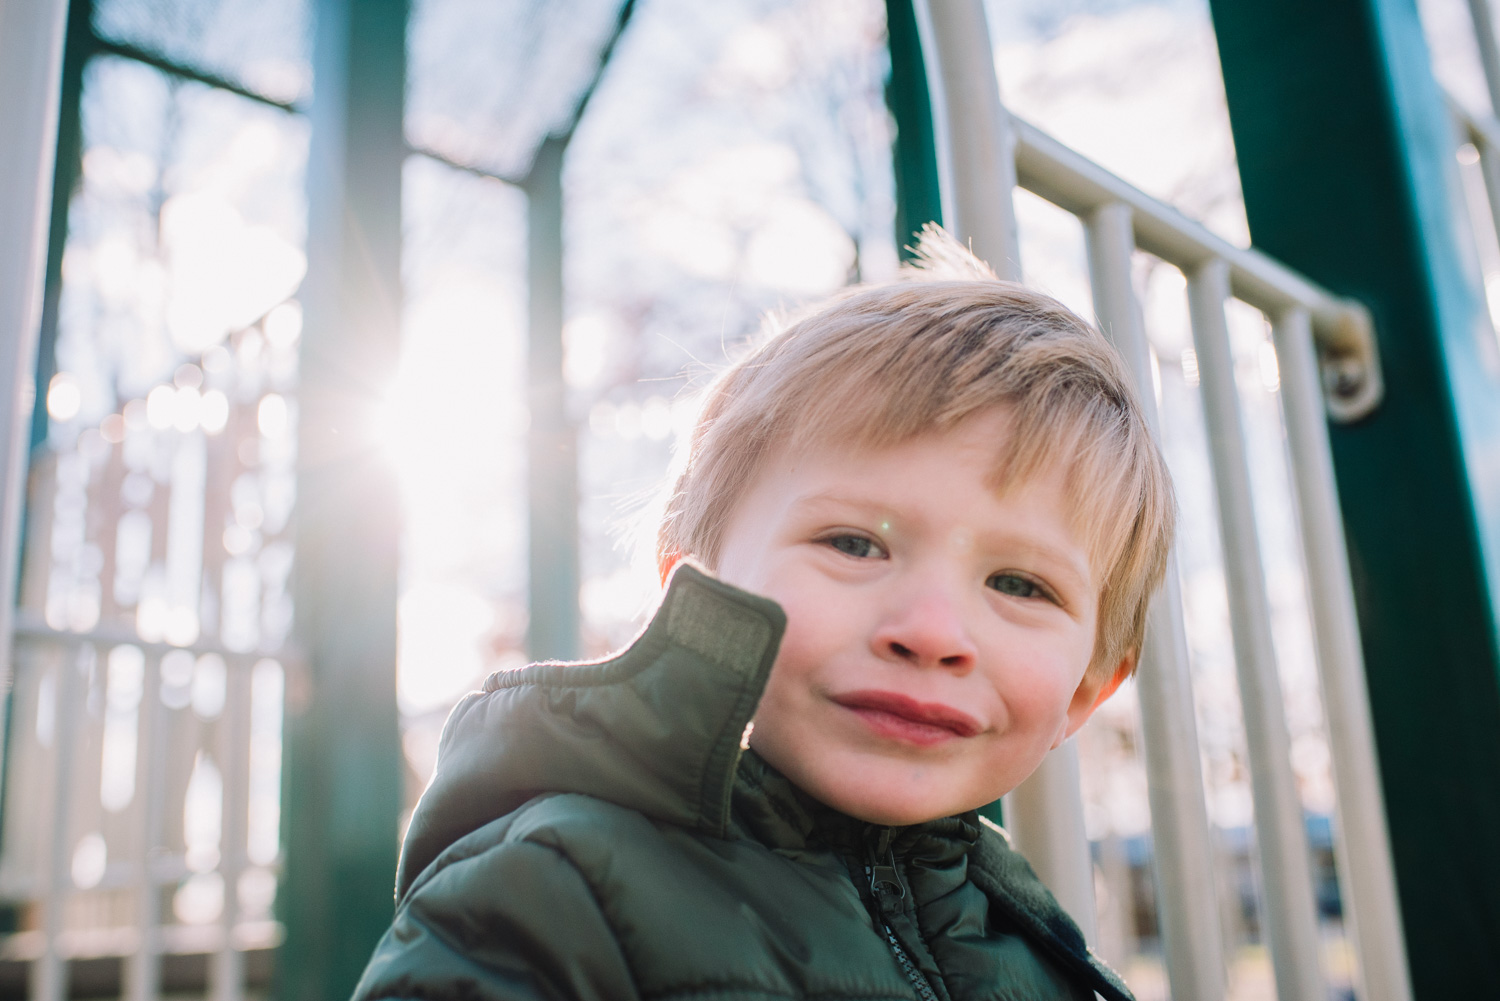 Portrait of a boy on the playground on a cold day.